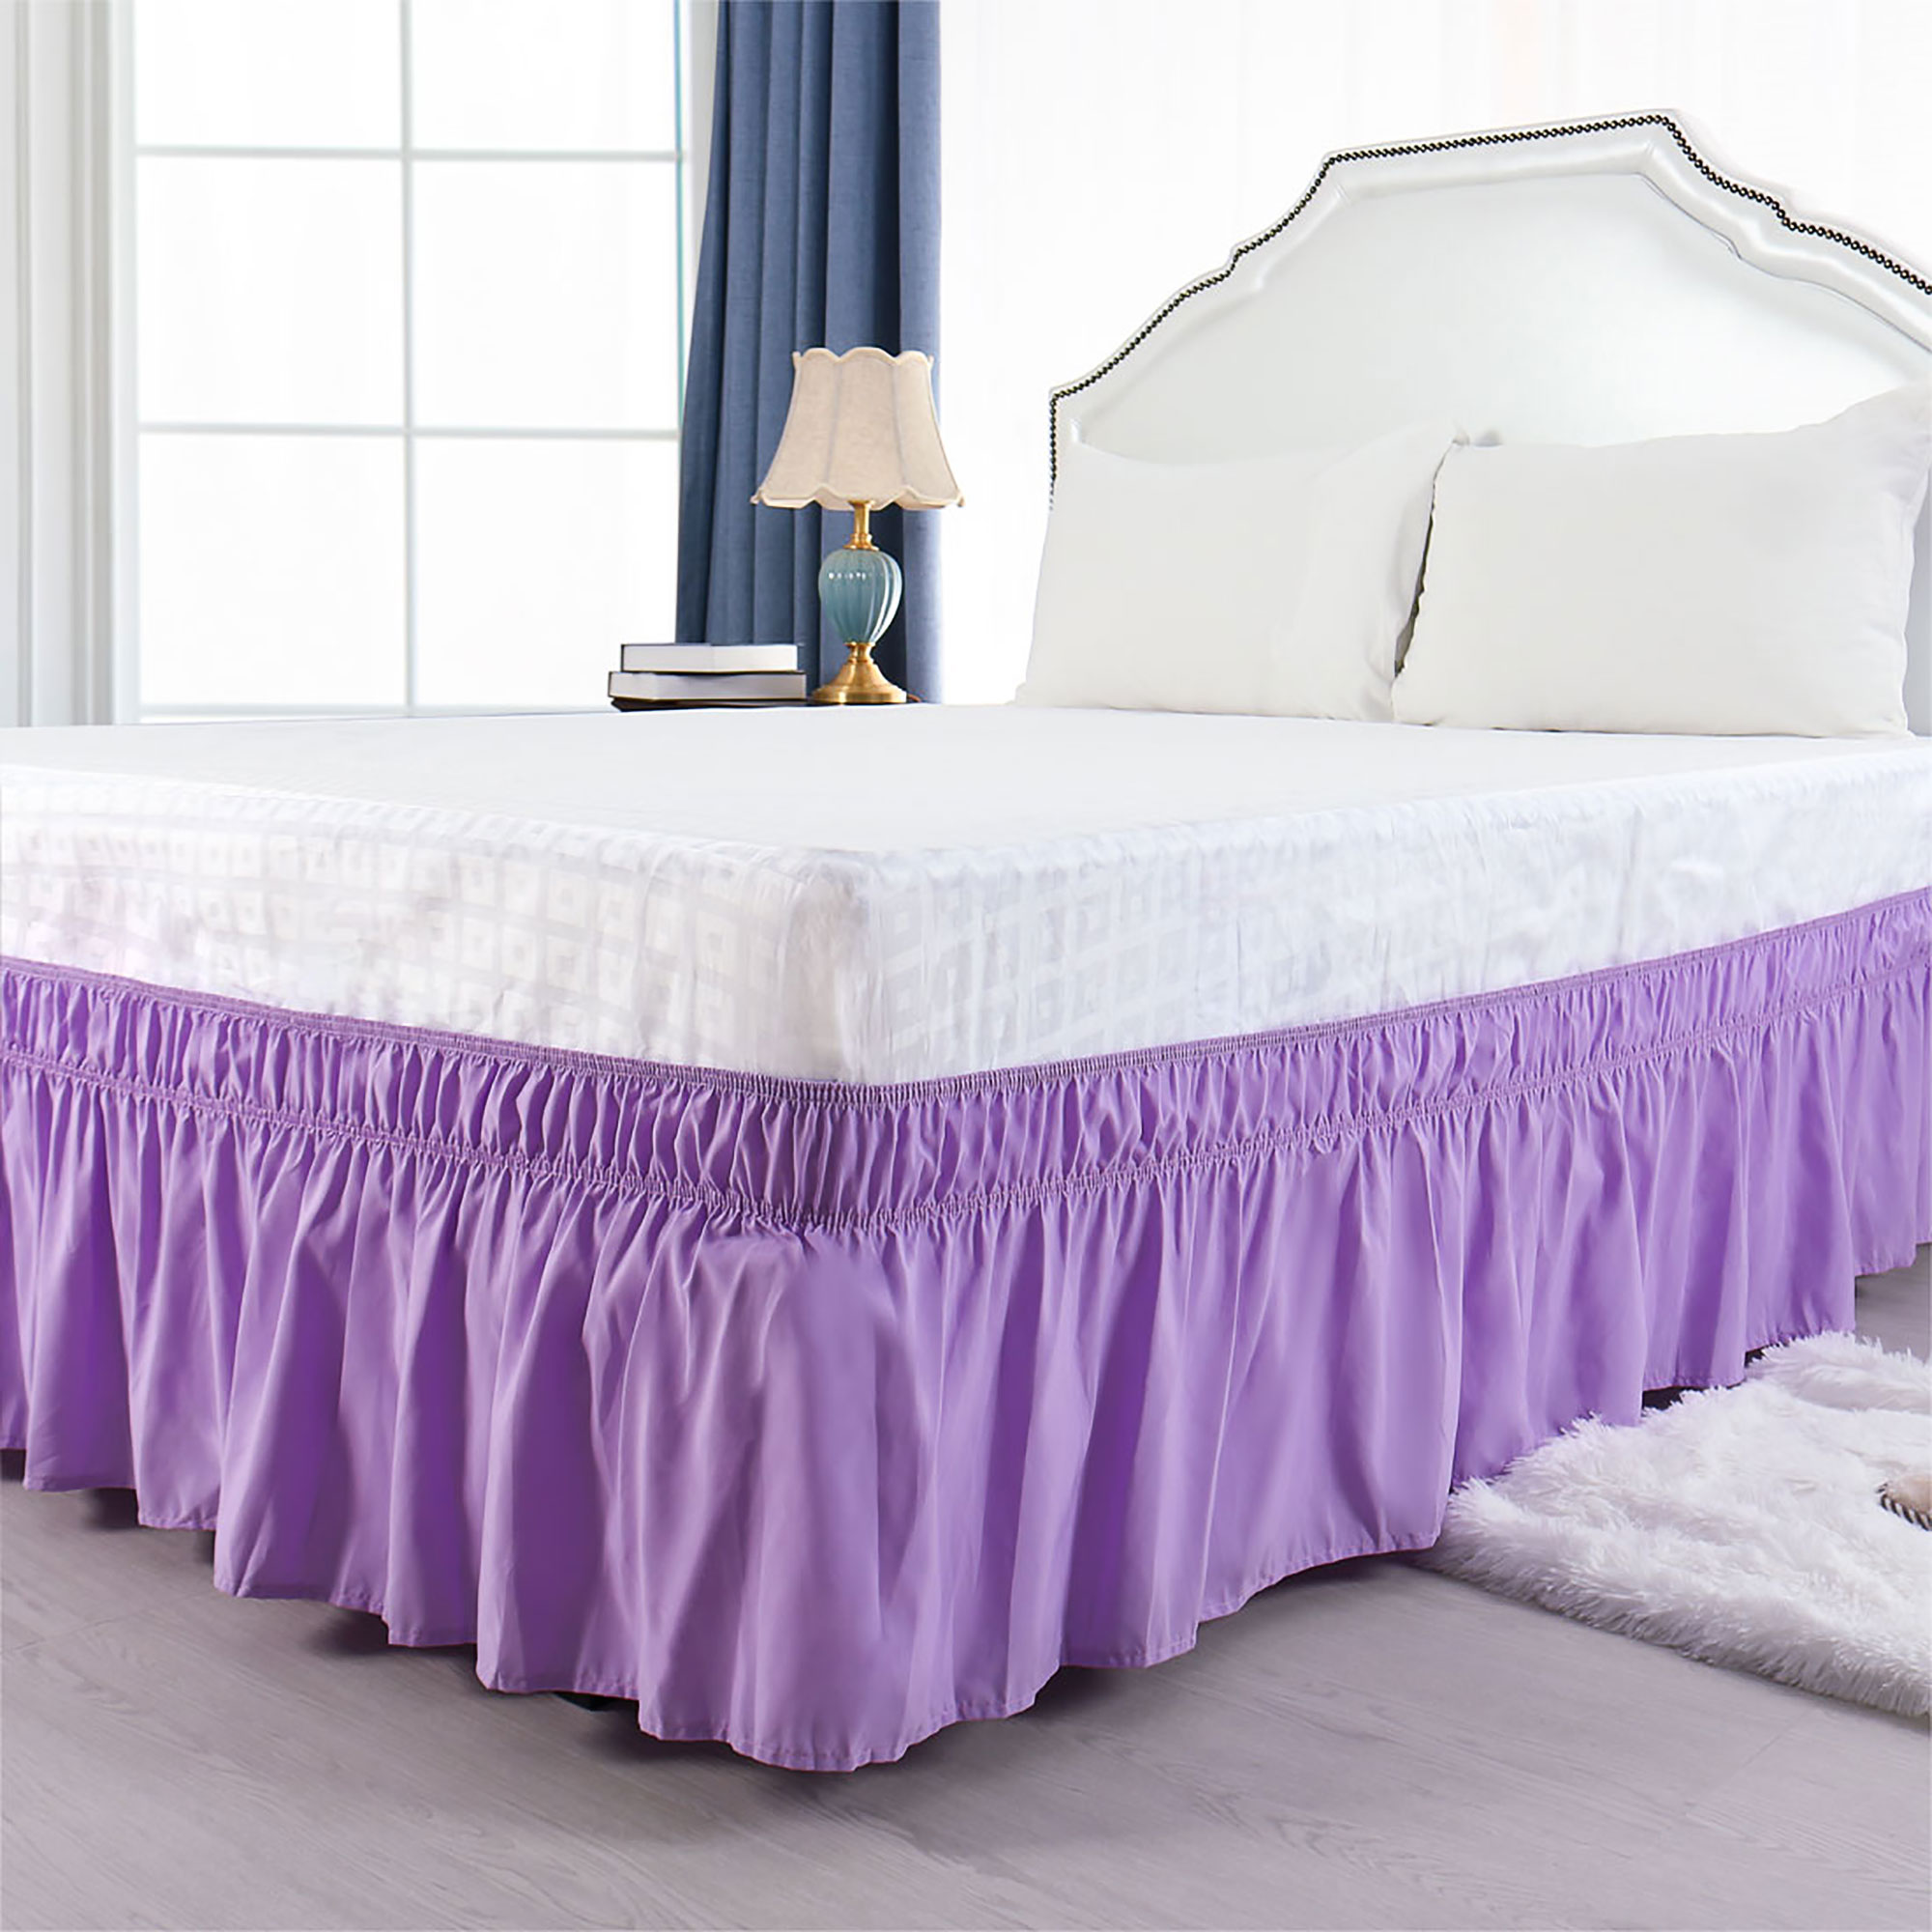 Valances Bed Skirts Purple Home Furniture Diy Omnitel Com Na